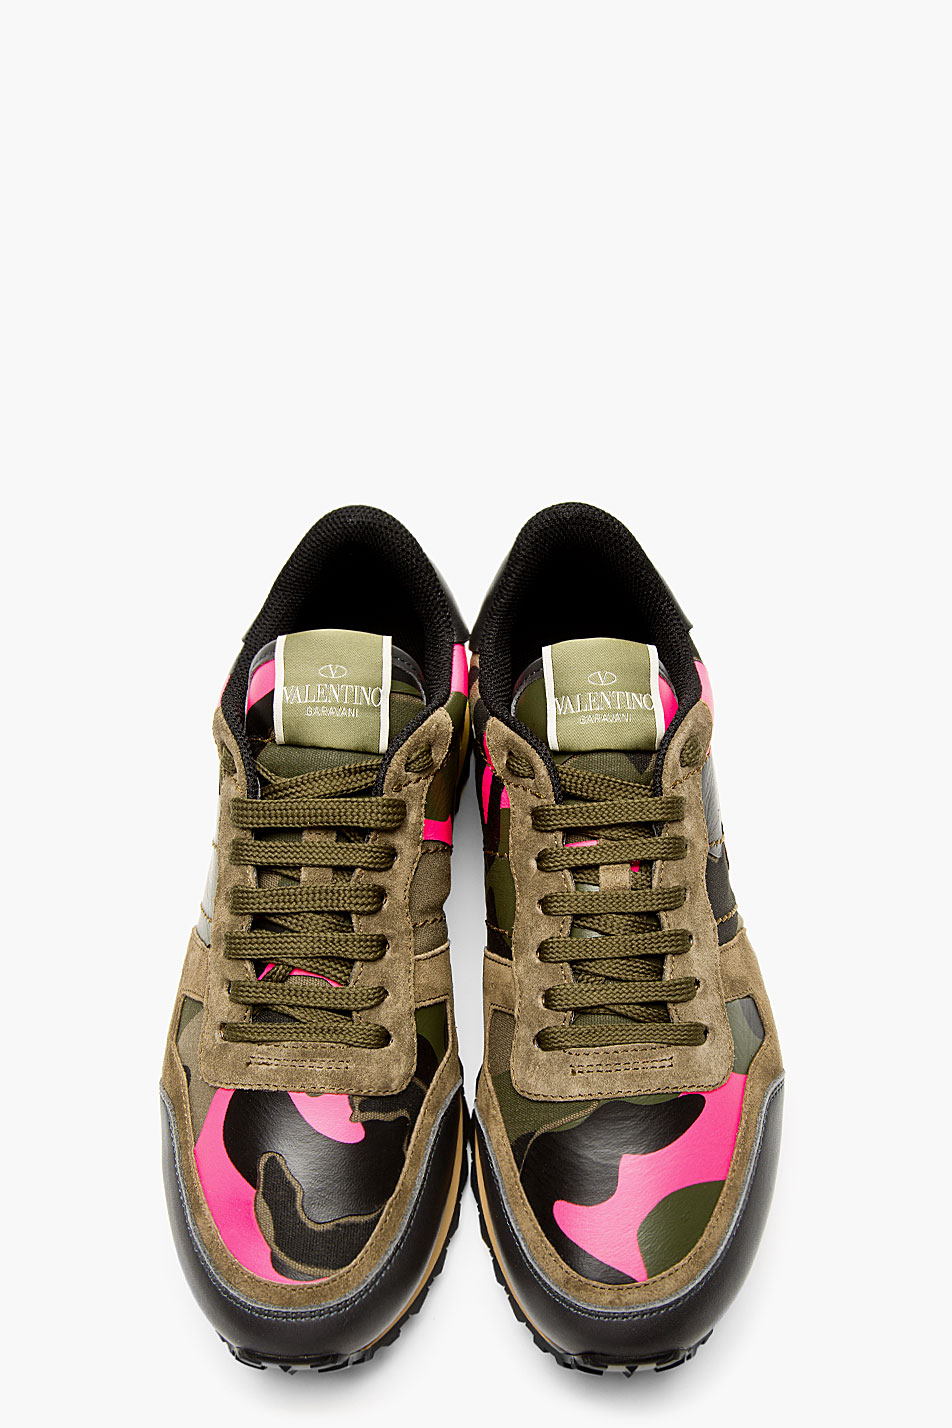 Valentino Green Camo Studded Running Shoes For Men Lyst